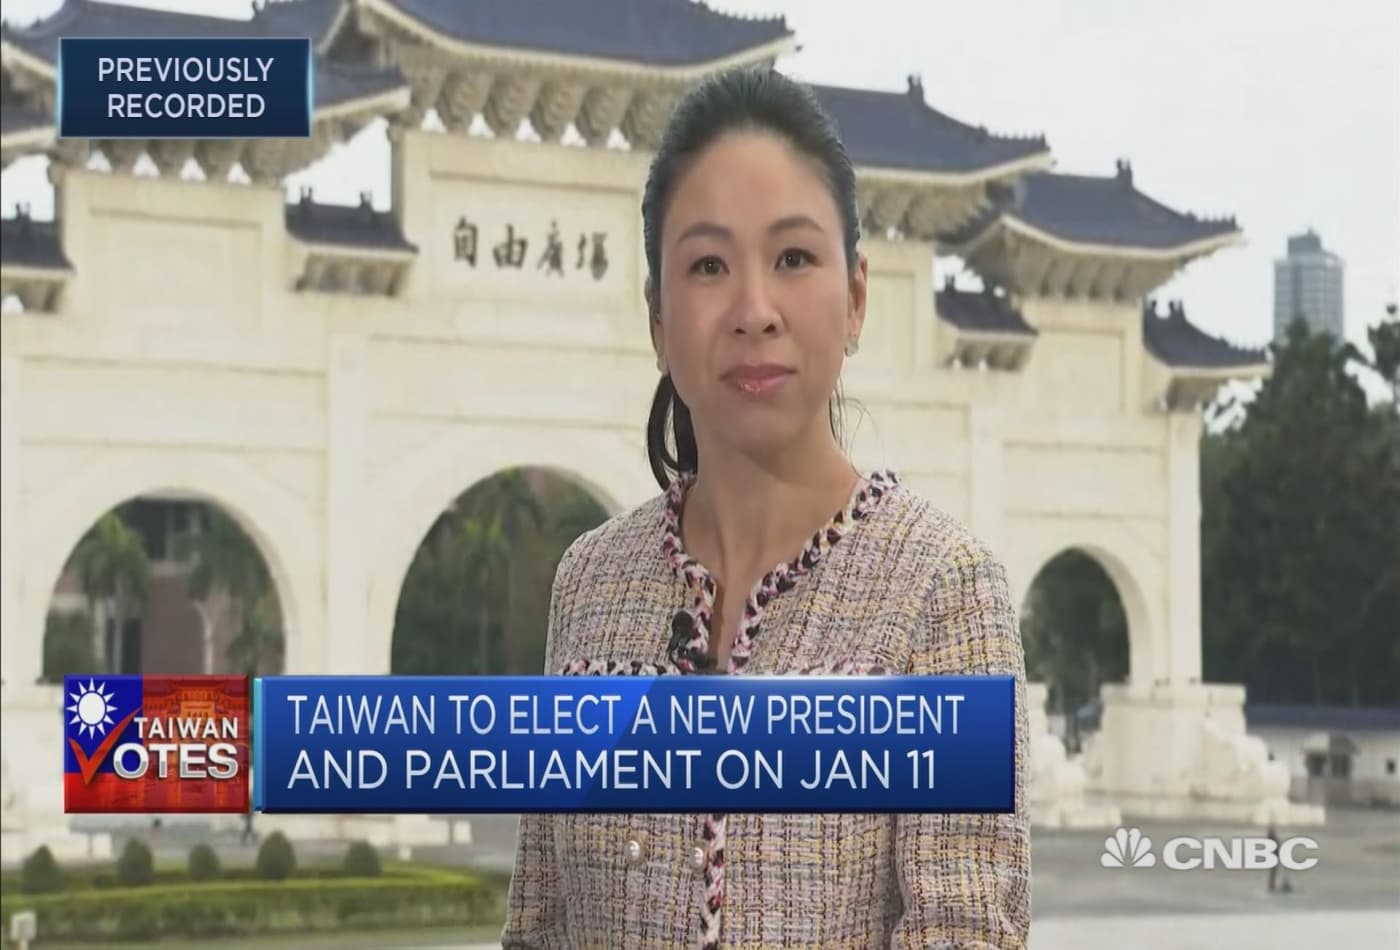 Taiwan's digital minister on opportunities and concerns amid elections in the digital age